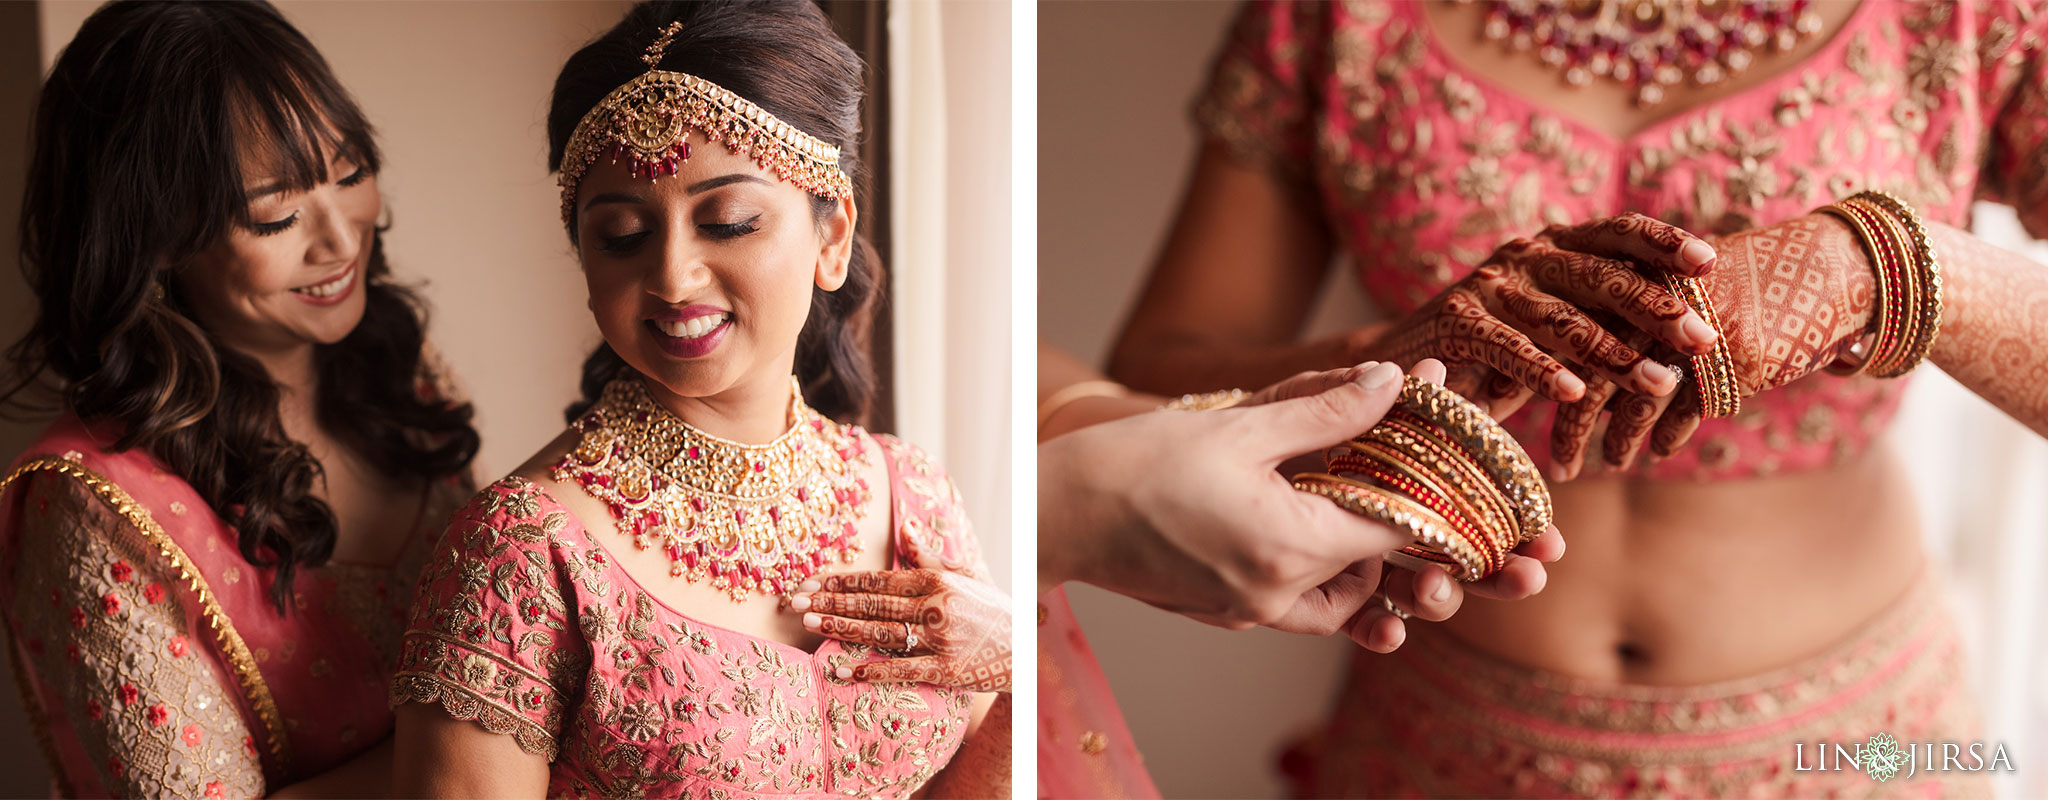 05 Union Station Los Angeles Indian Wedding Photography